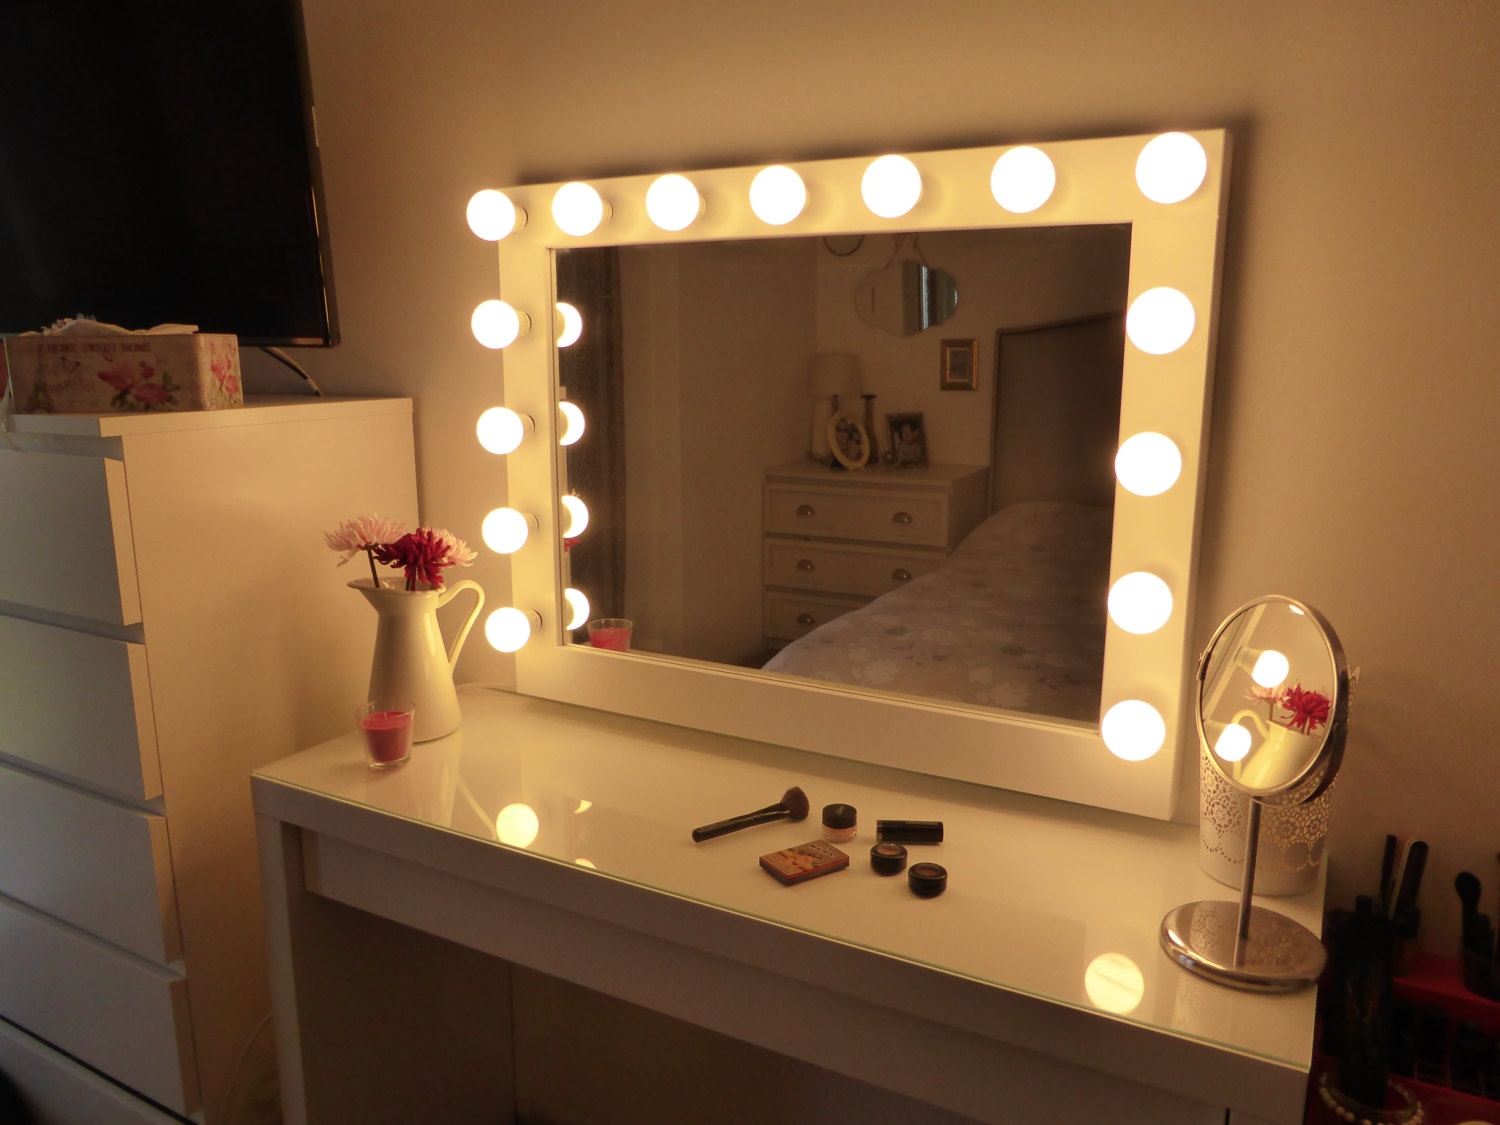 Wall makeup mirror with lights